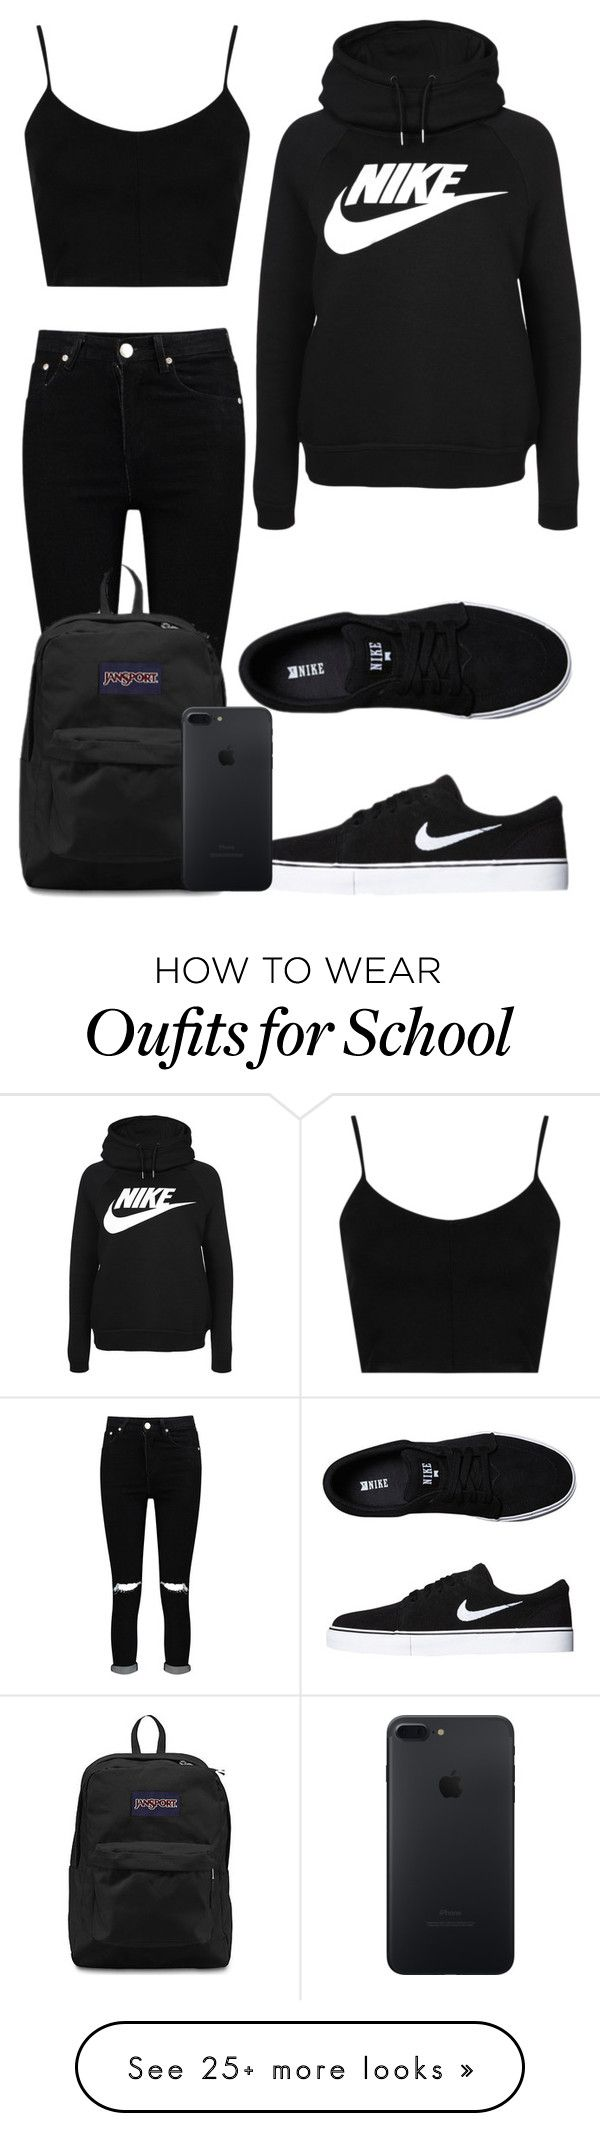 """Tuesday School"" by kellyaguilera on Polyvore featuring Topshop, Boohoo, NIKE, JanSport, casual, school and teen"